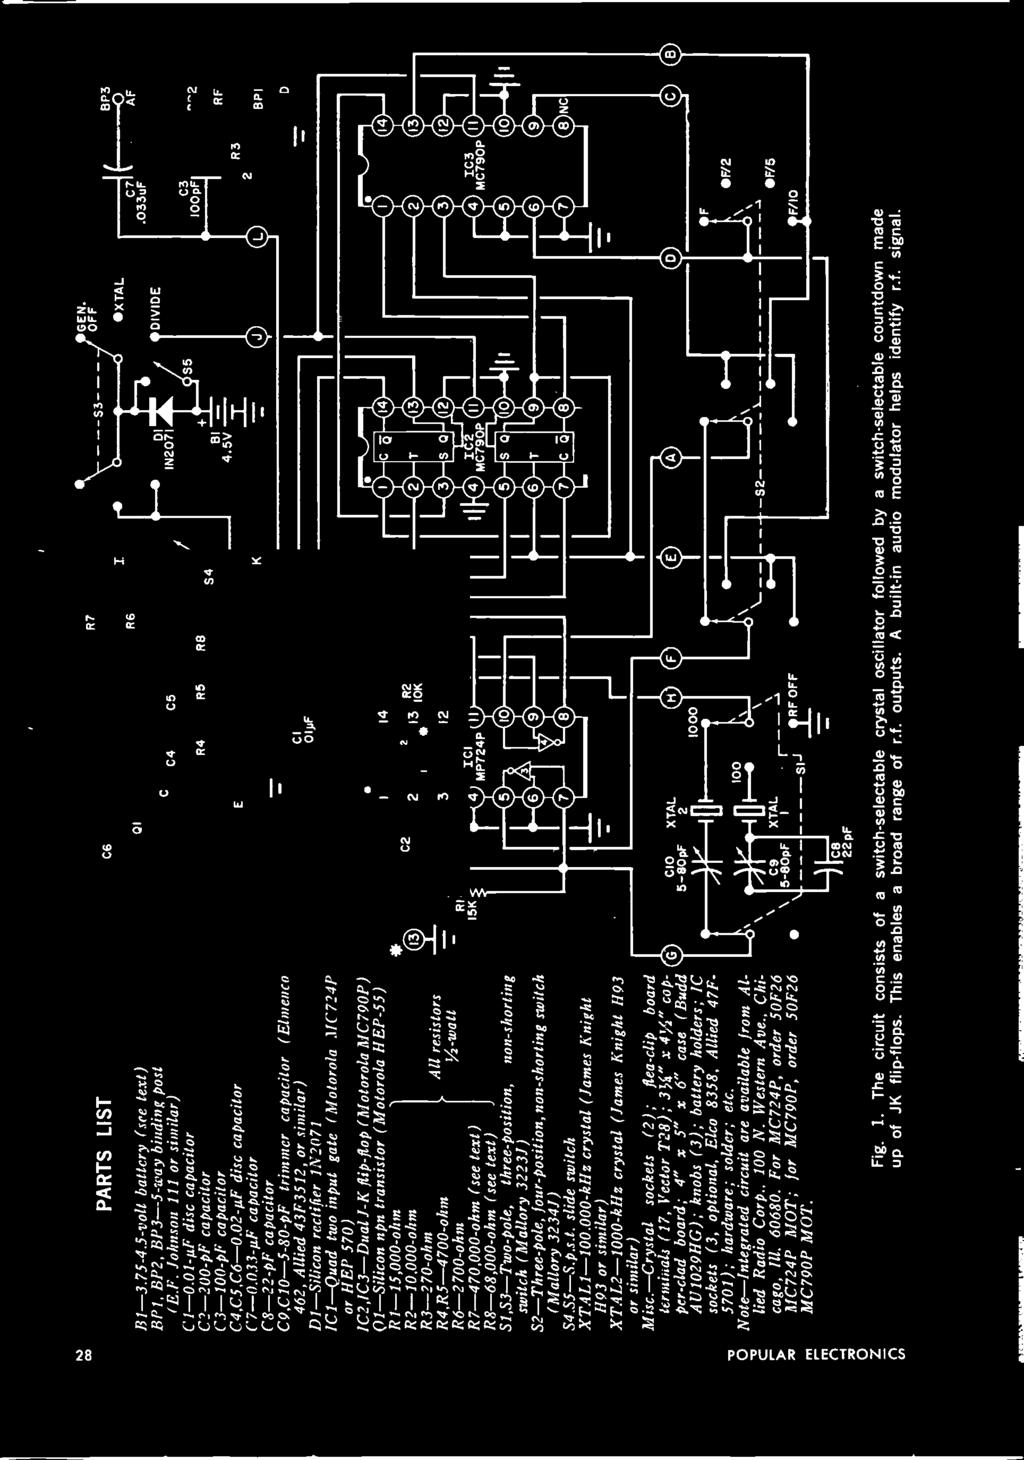 Whats New In 1970 Cb Equipment What To Buy Ham Radio Augugsq Dwell Dan Amstrong Blue Clipper Guitar Effect Circuit Diagram 033 9f Capacitor C8 22 Pf C9c10 5